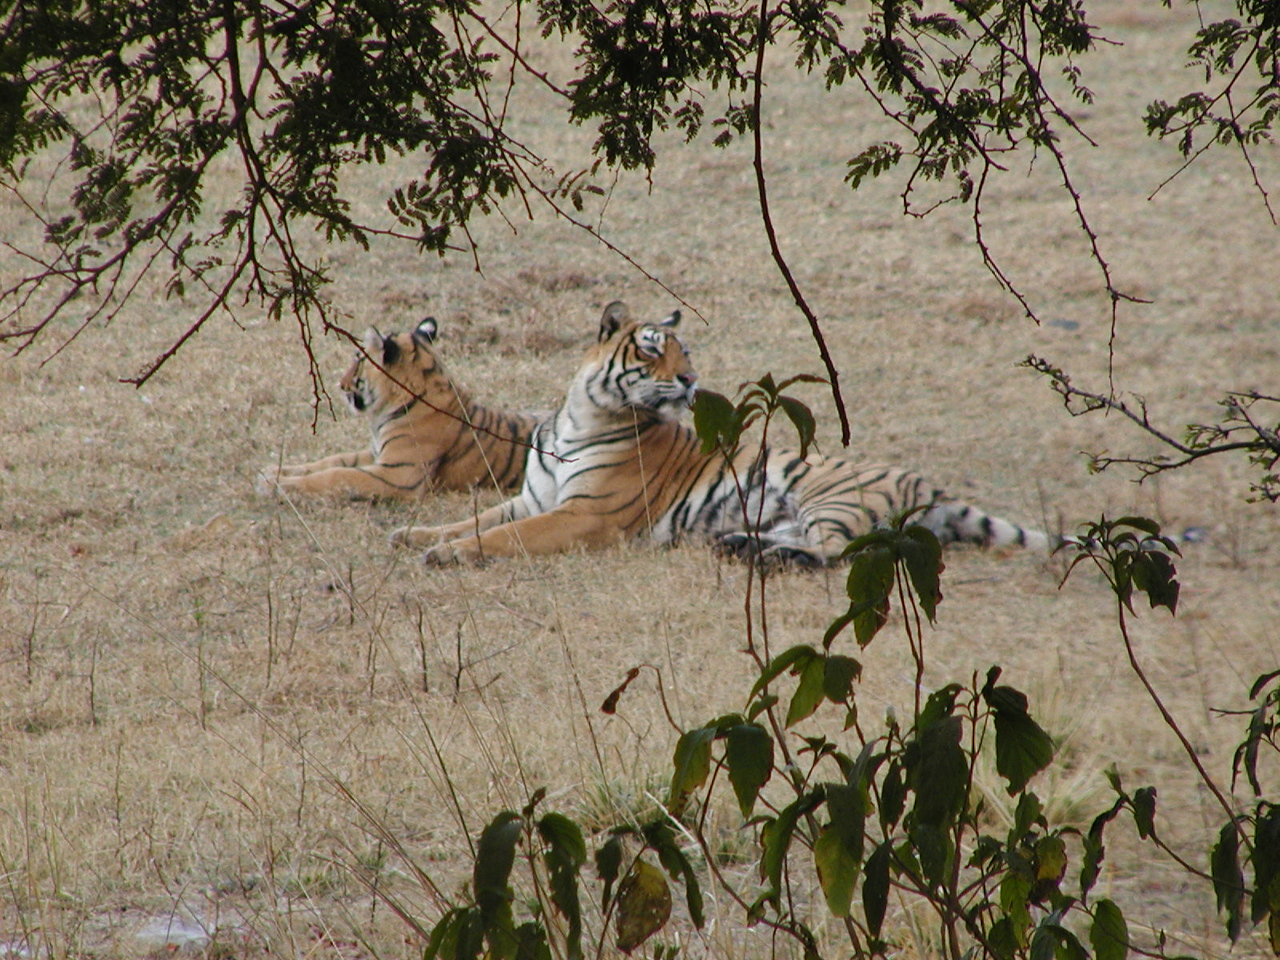 The guide almost promised that we would see a tiger in this park.  We saw this tiger and her cub by 7:30am.